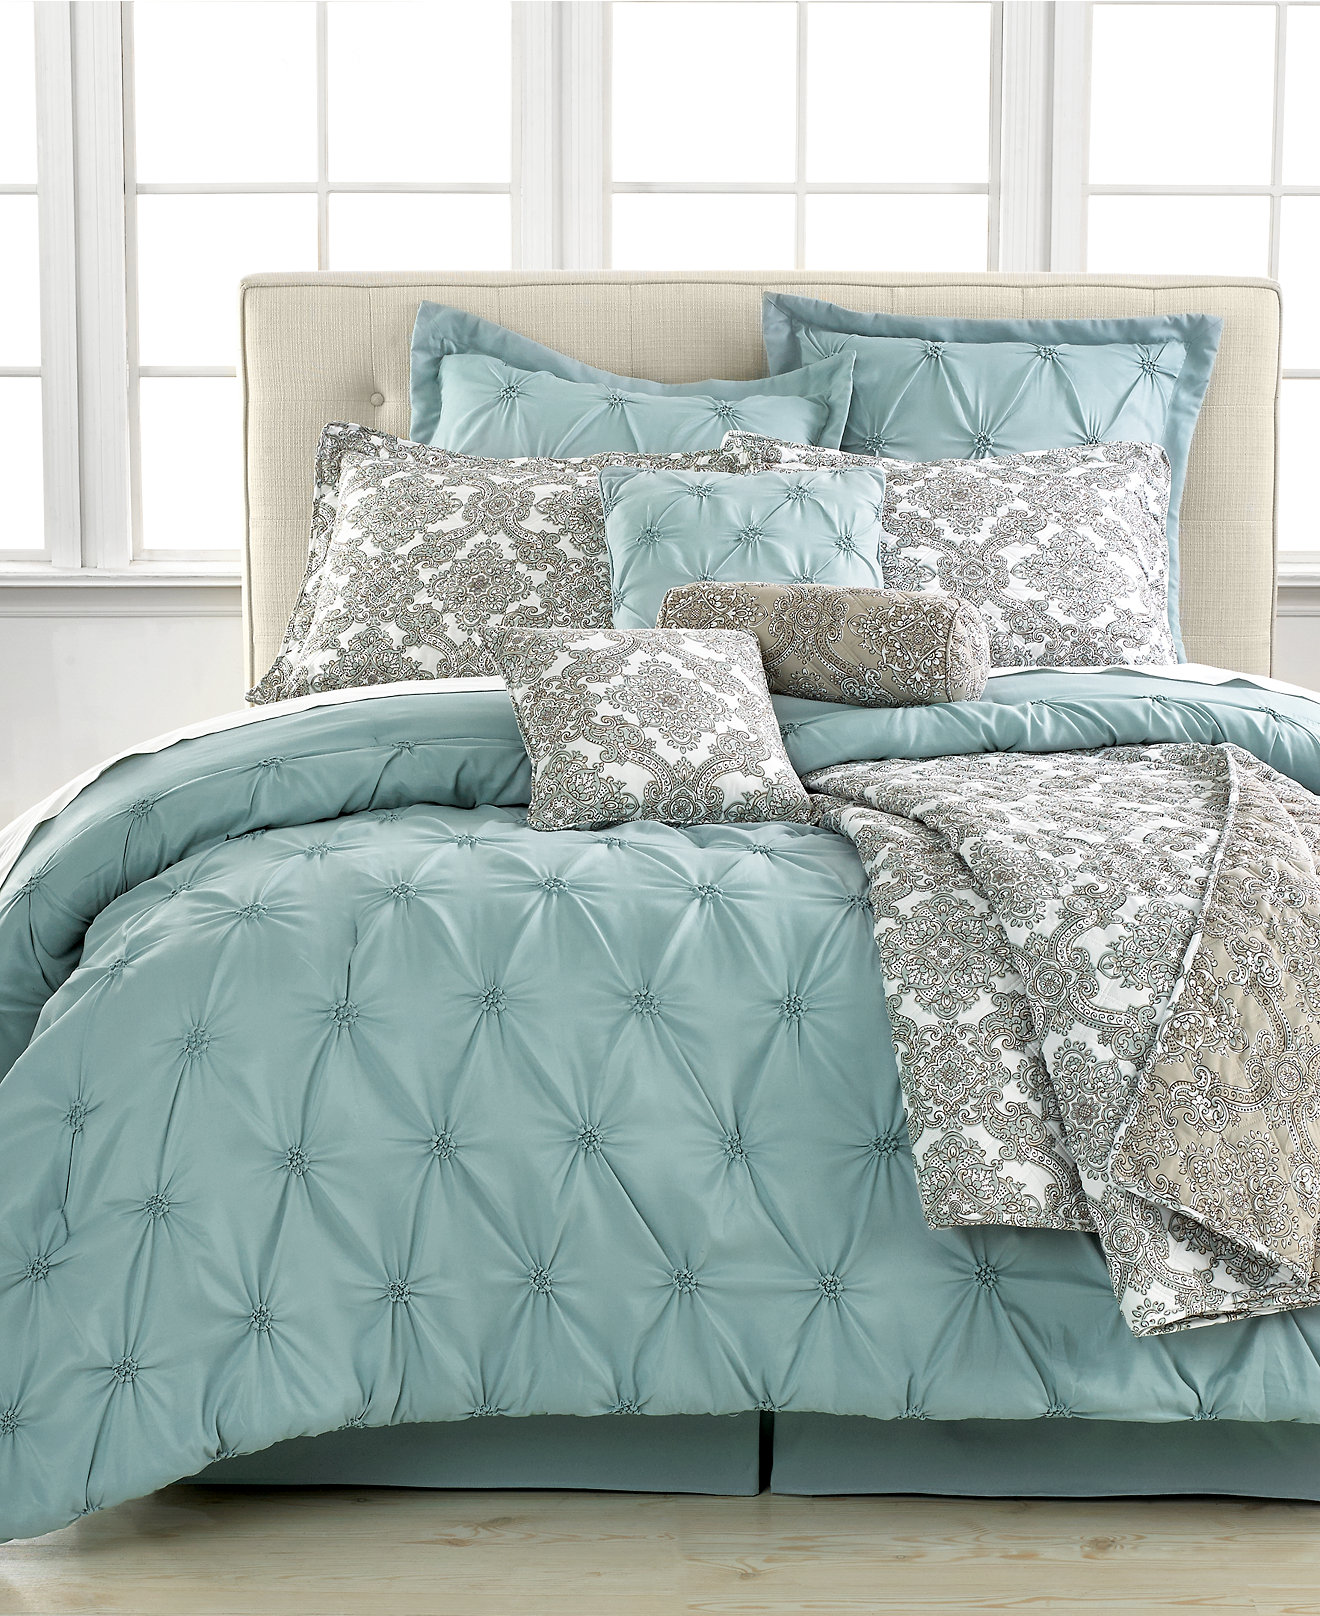 Bed In A Bag Comforter Sets